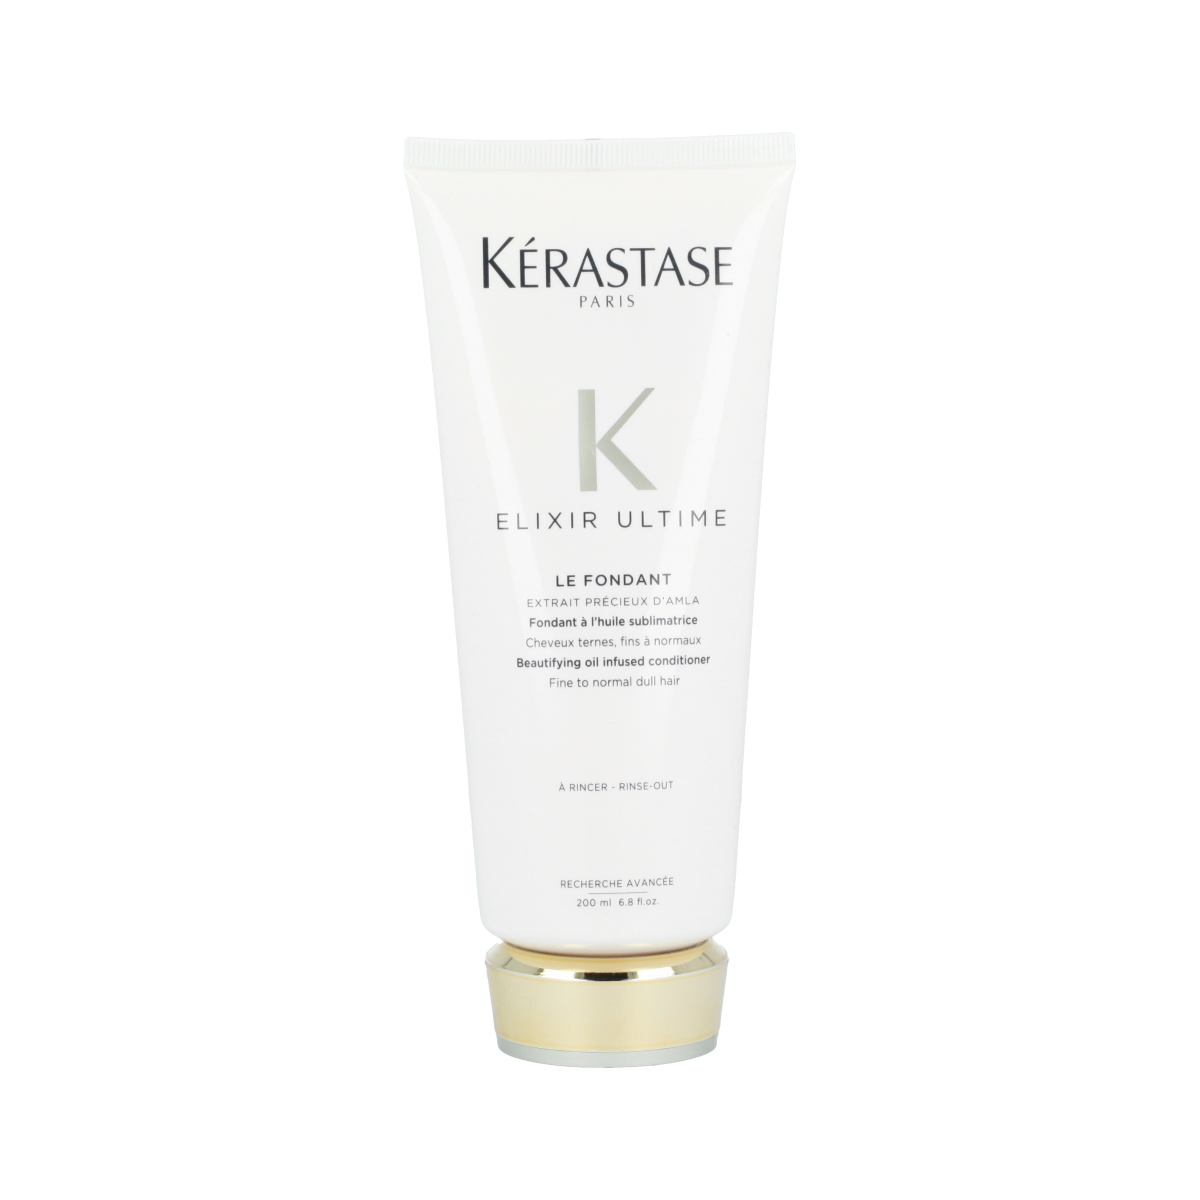 Kérastase Paris Kérastase Elixir Ultime Le Fondant Conditioner 200 ml 98904